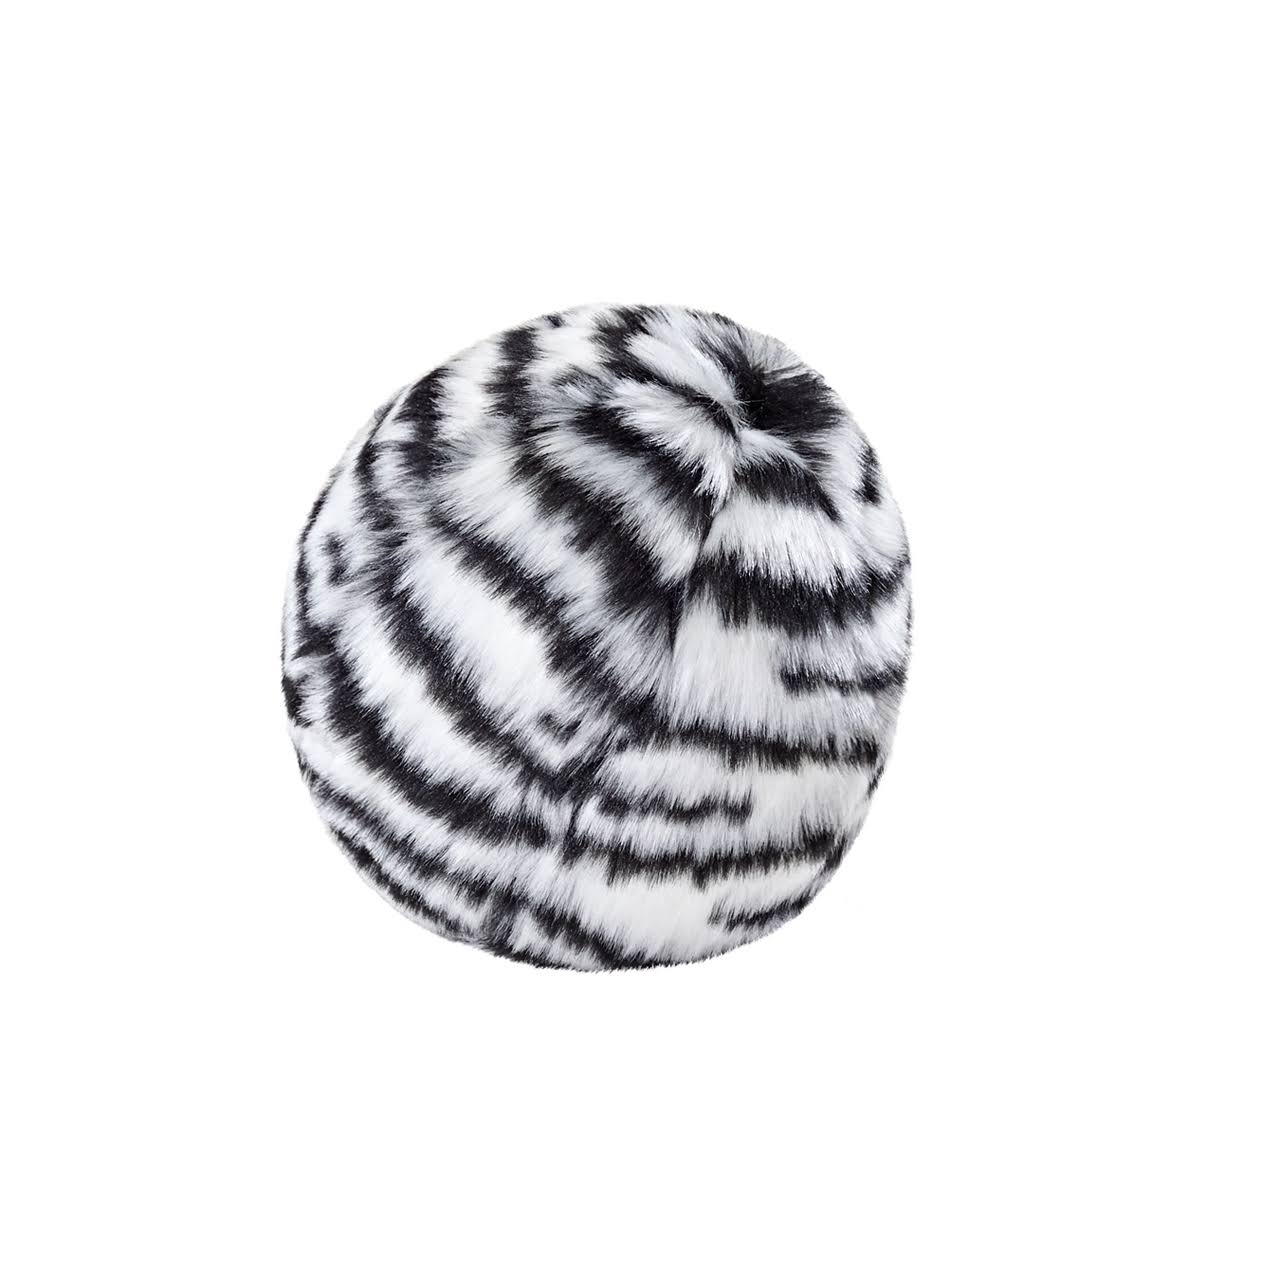 Fluff & Tuff Zebra Ball Durable & Ultra Plush Dog Toy 4in